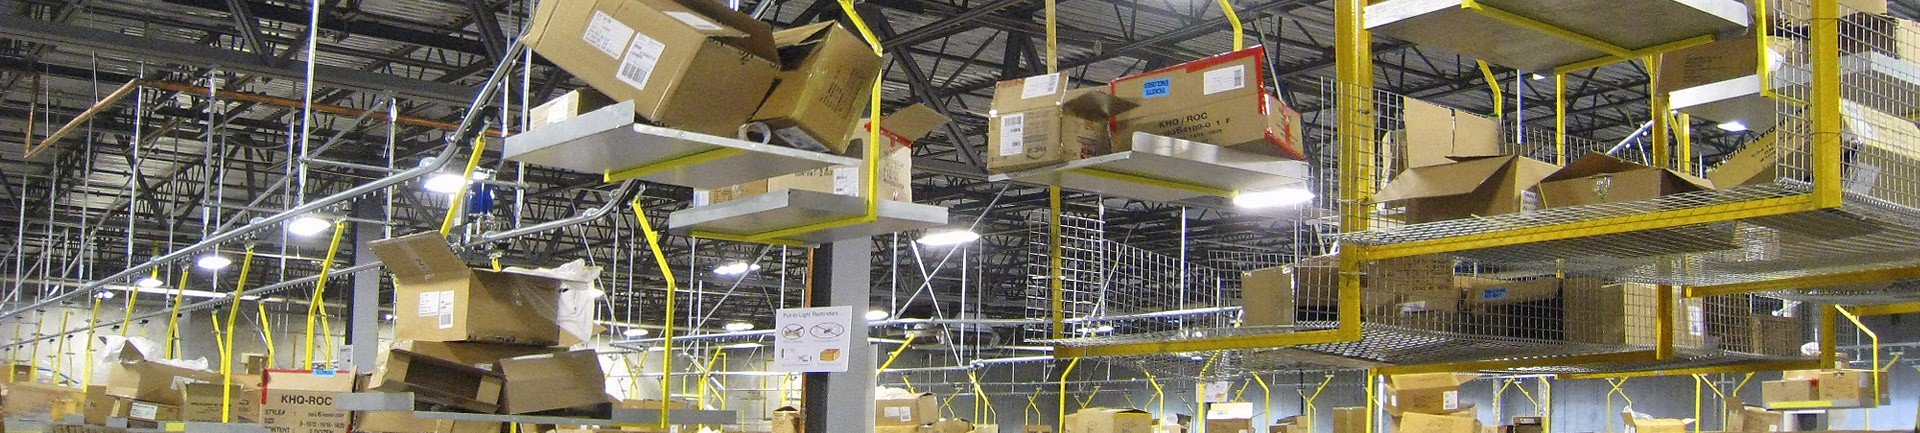 Conveyor removes corrugated carton trash in warehouses and distribution centers.